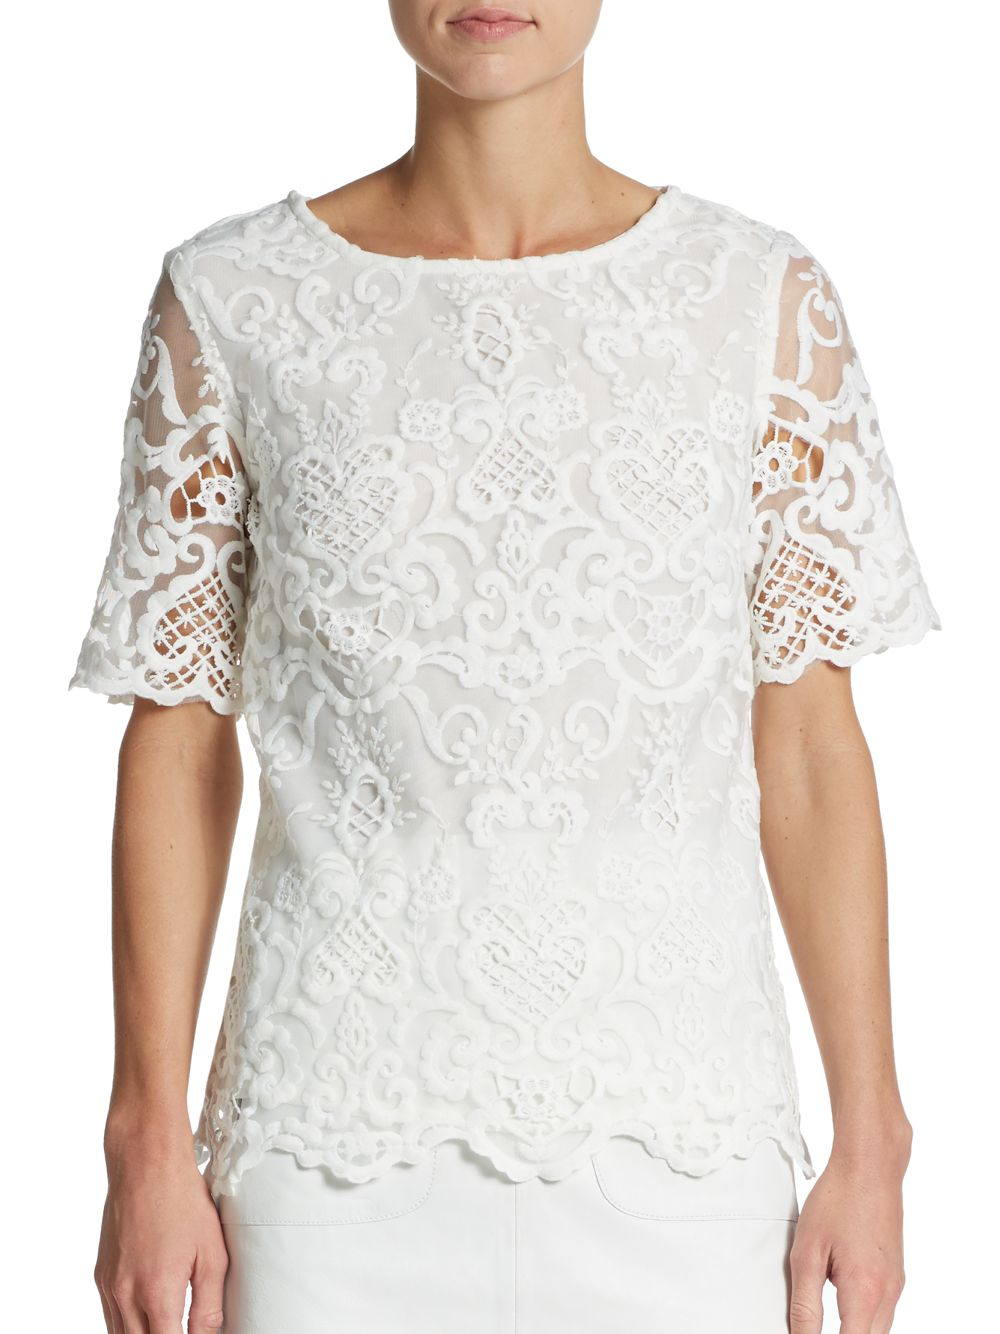 Womens French White Blouse 91